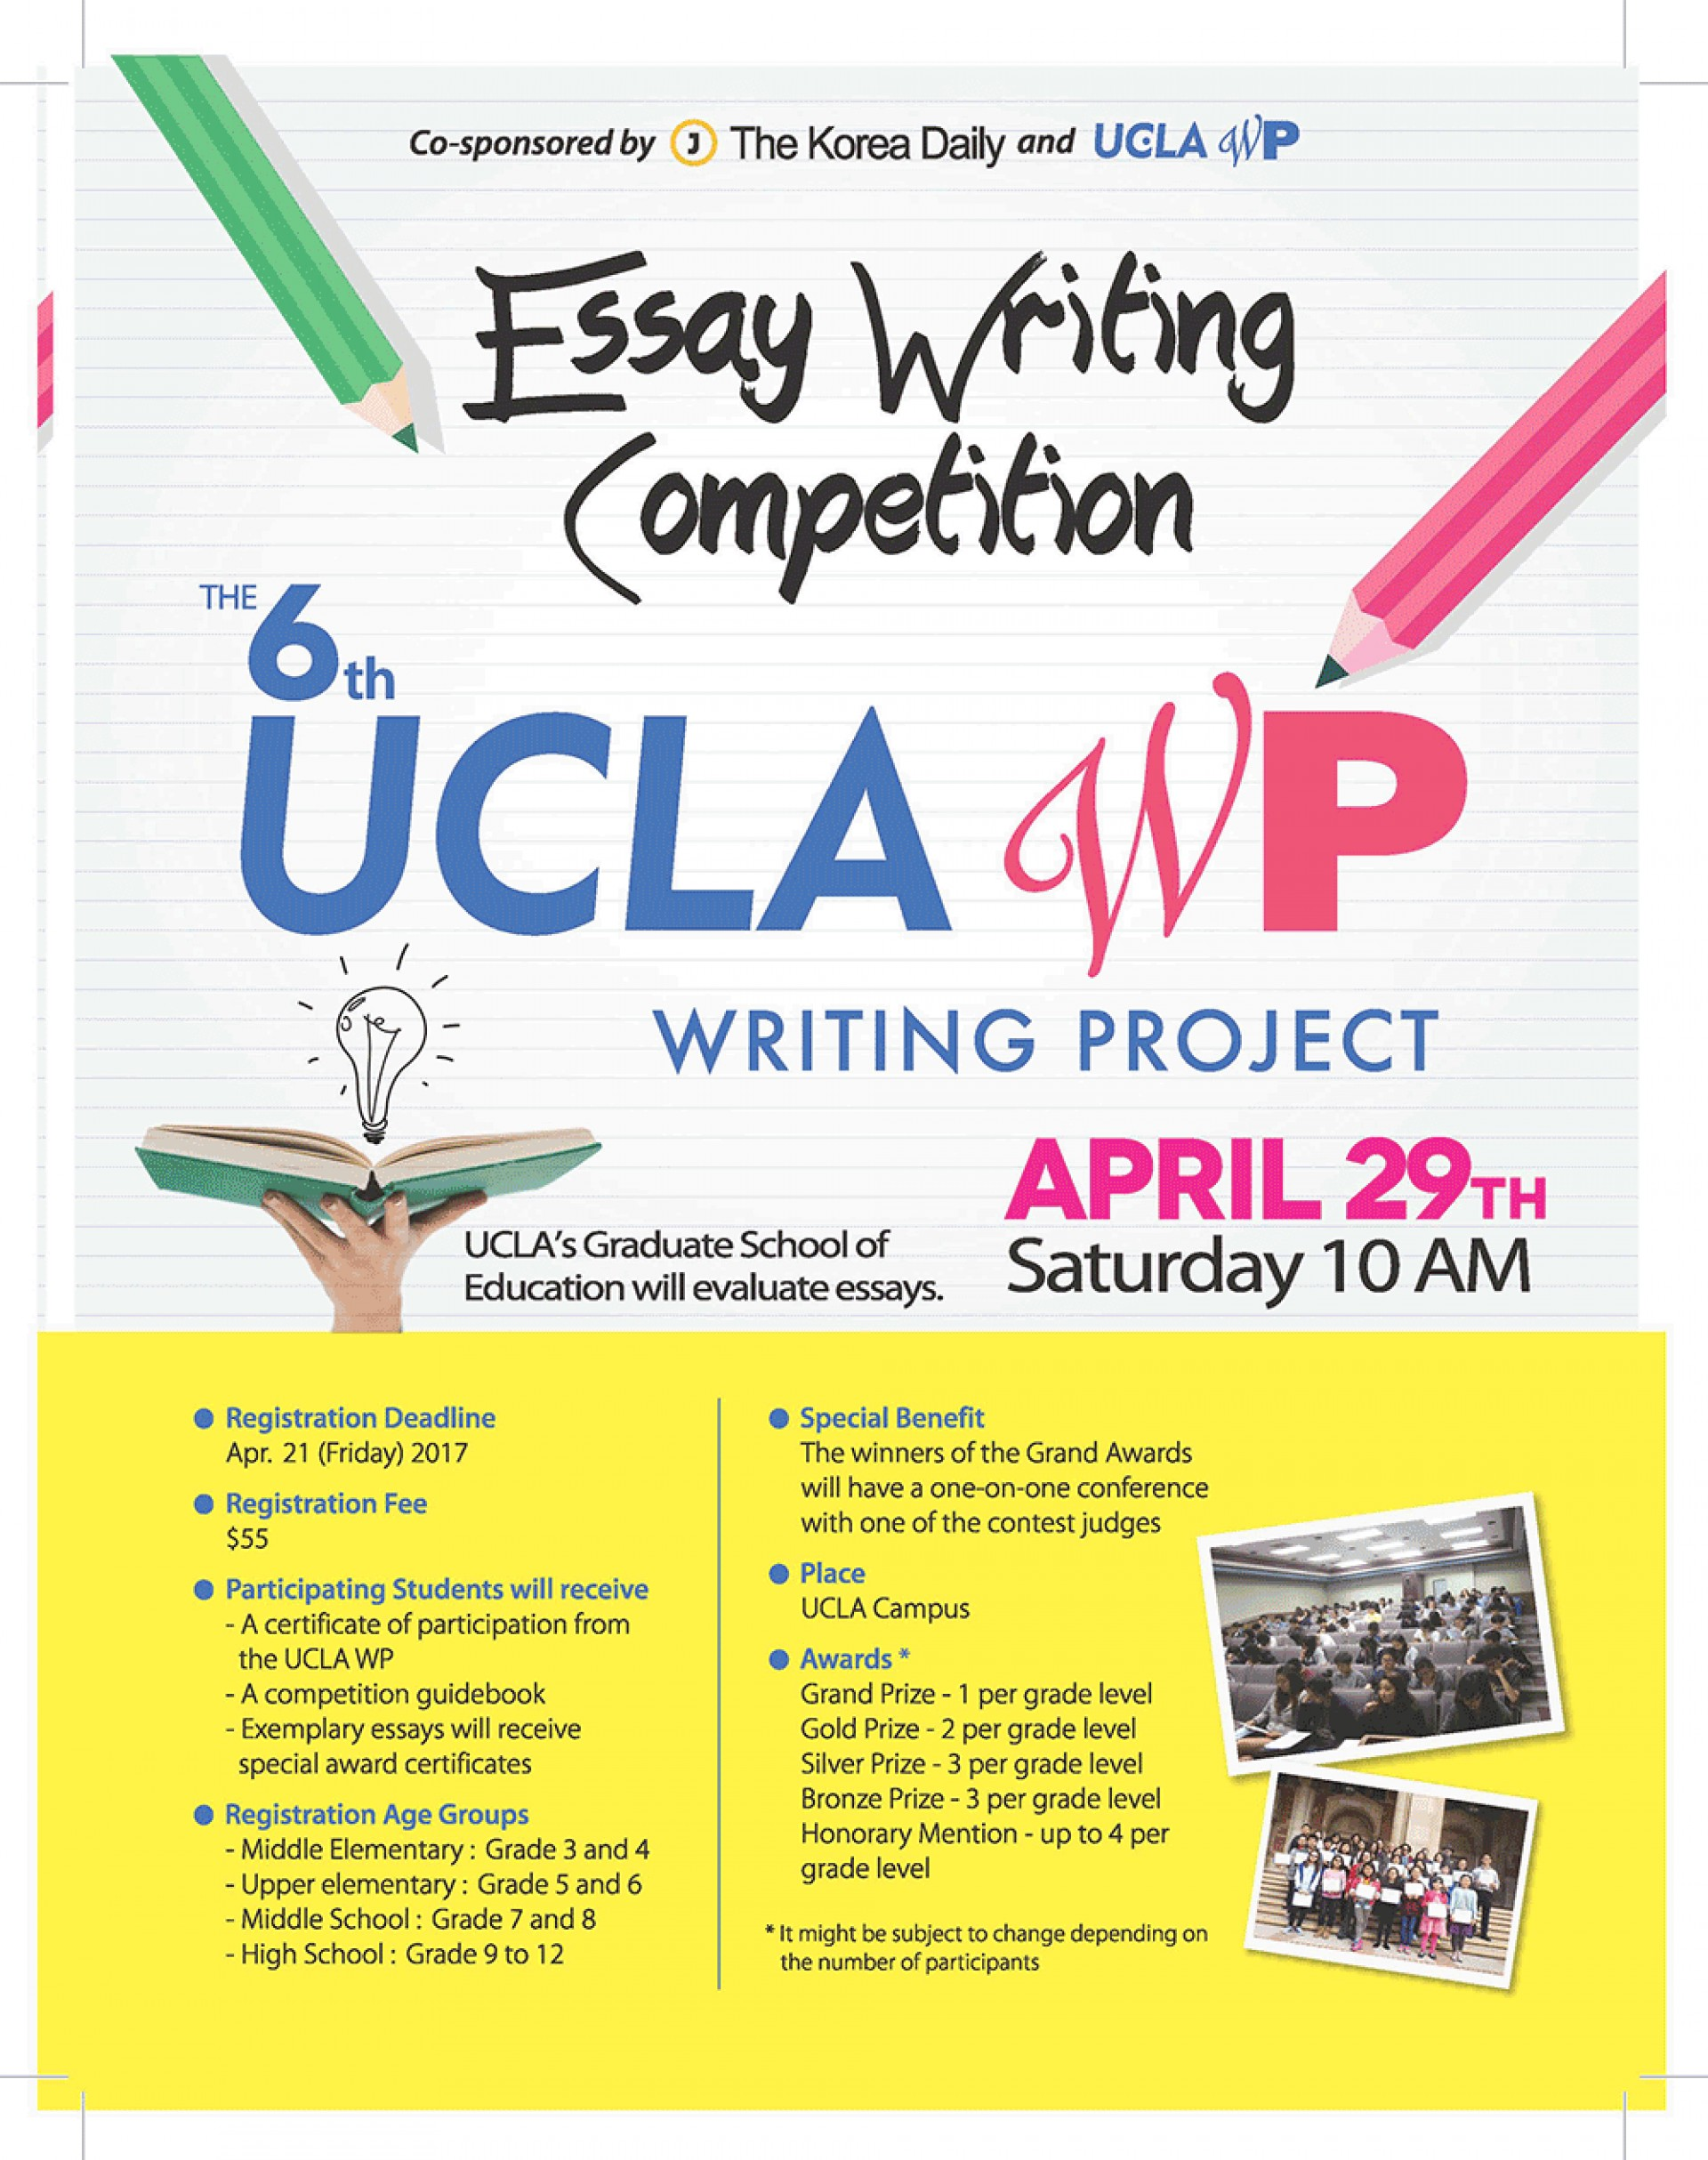 008 Essay Writing Contest Example Uclakoreandaily Incredible Free Contests 2018 International Competitions For High School Students India 1920